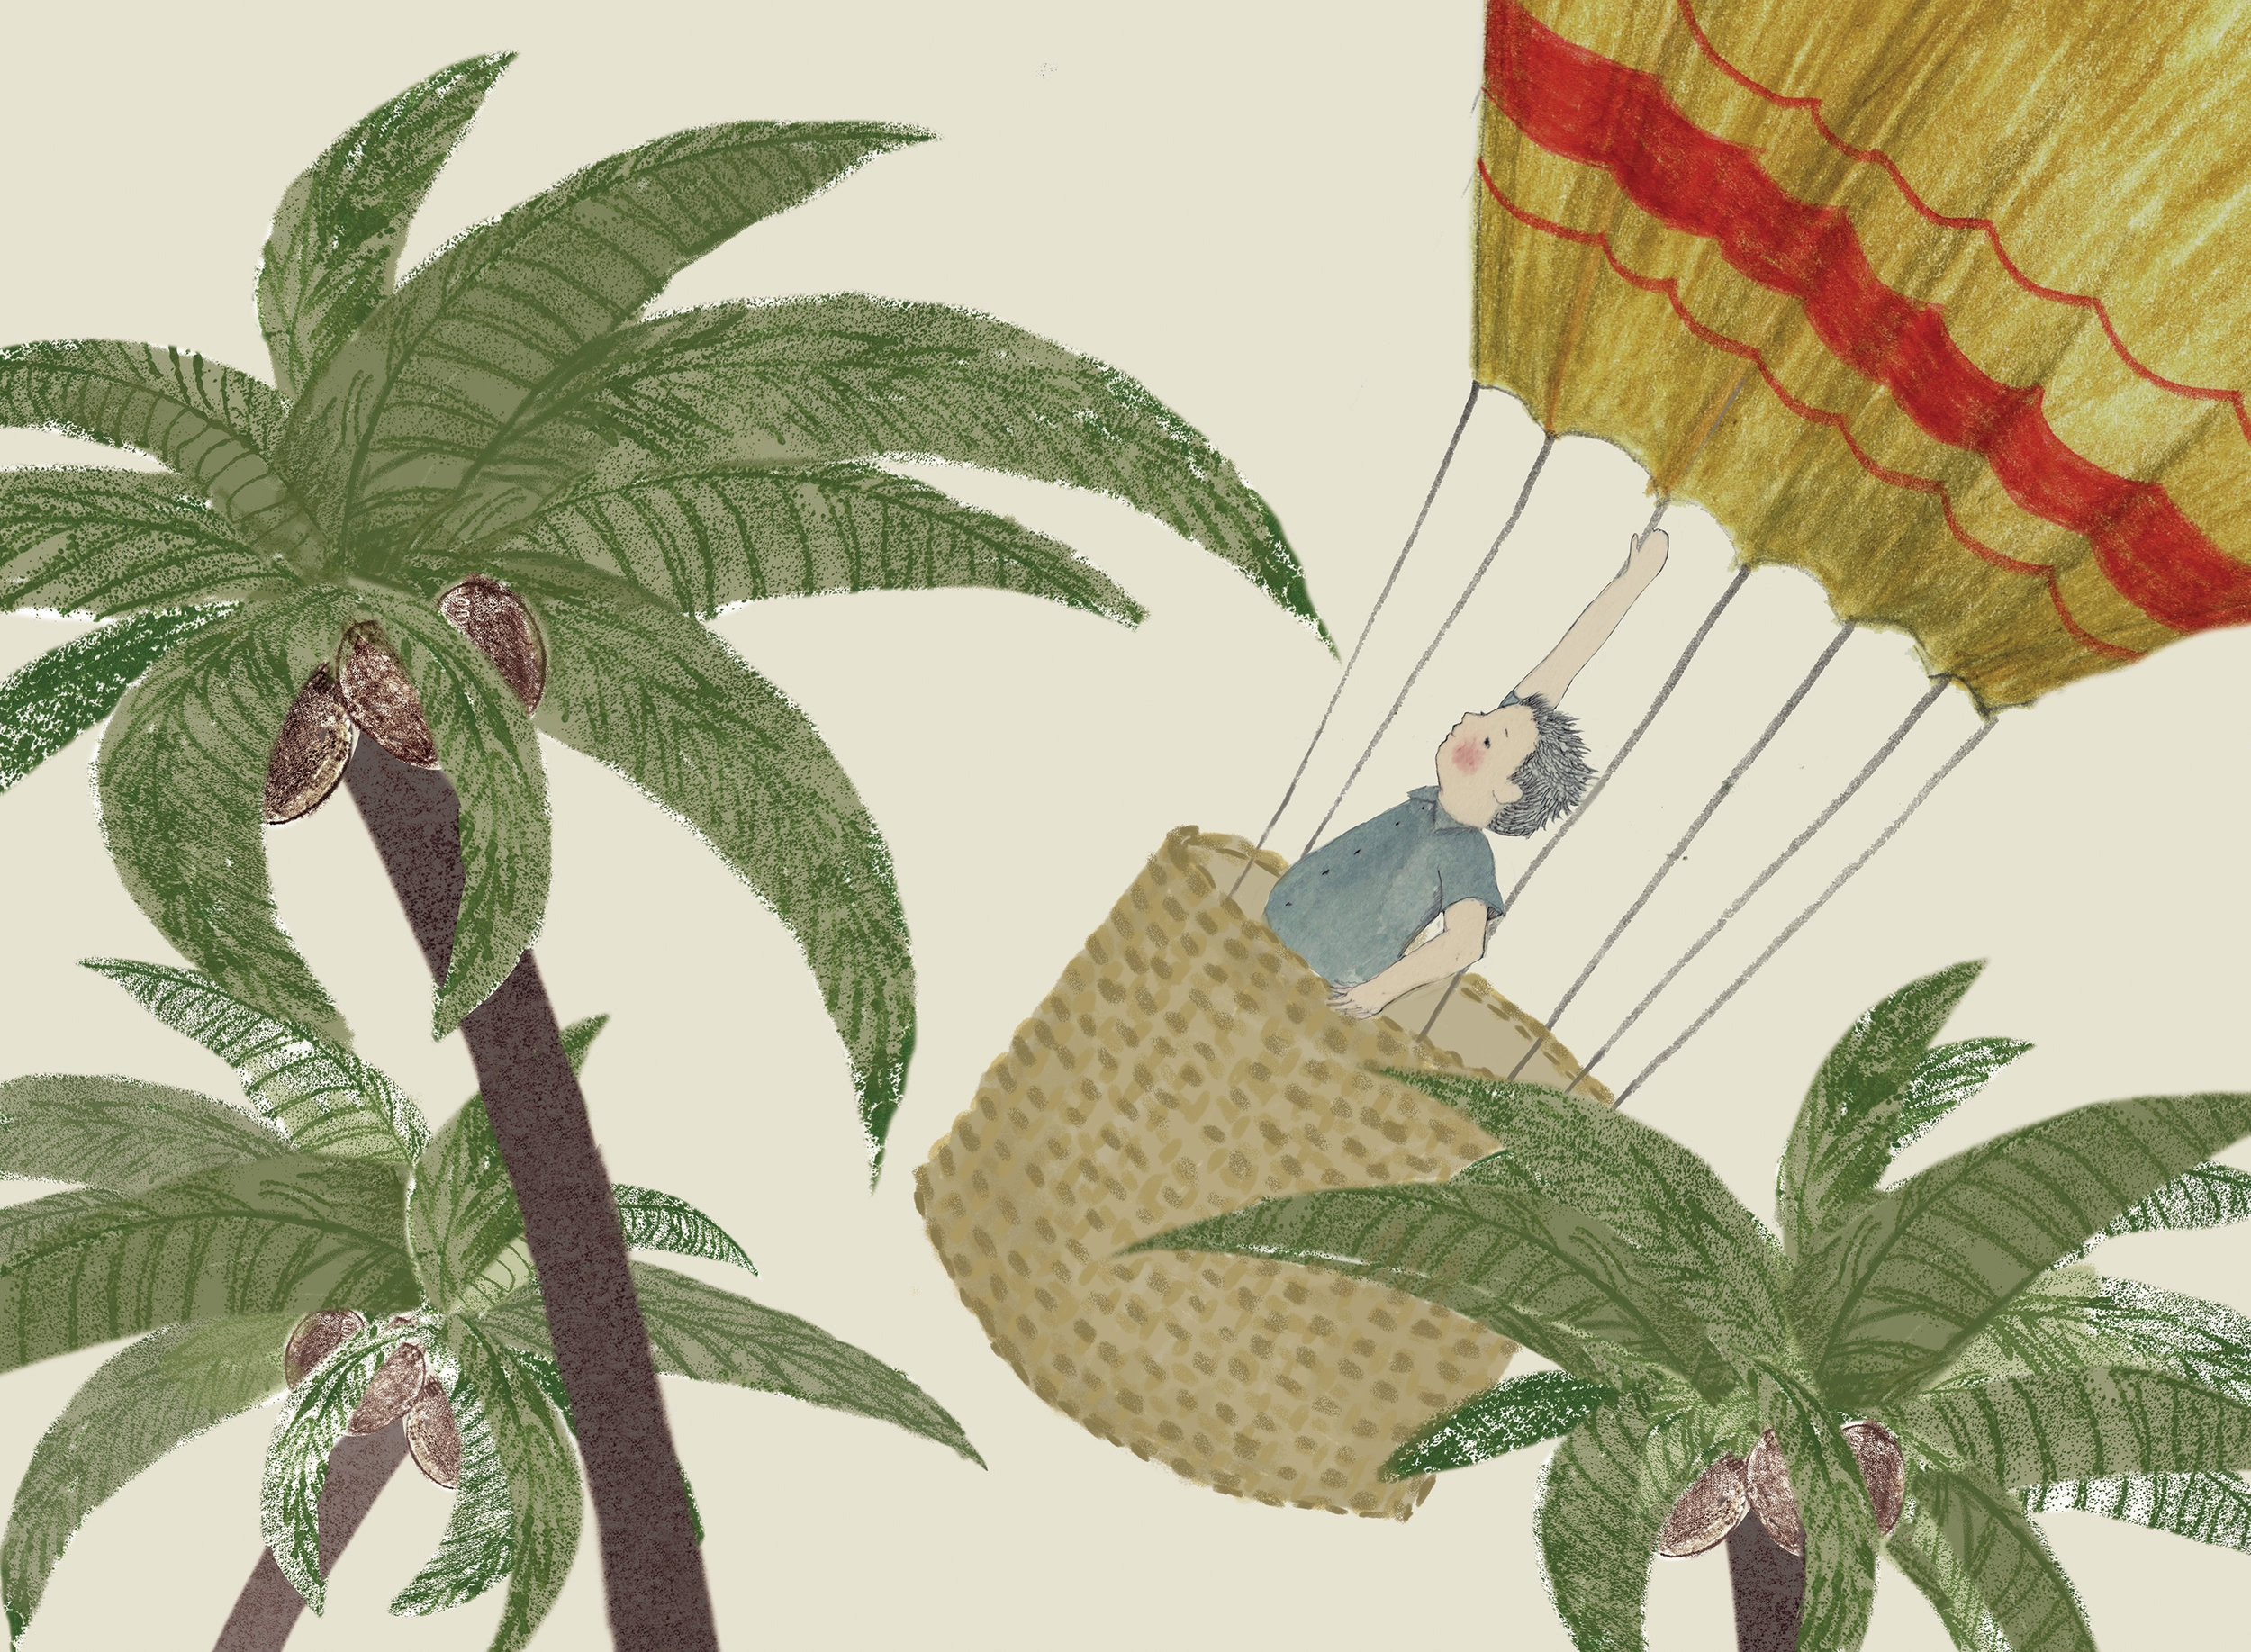 hot air balloon and palm tree with Markus updated.jpg